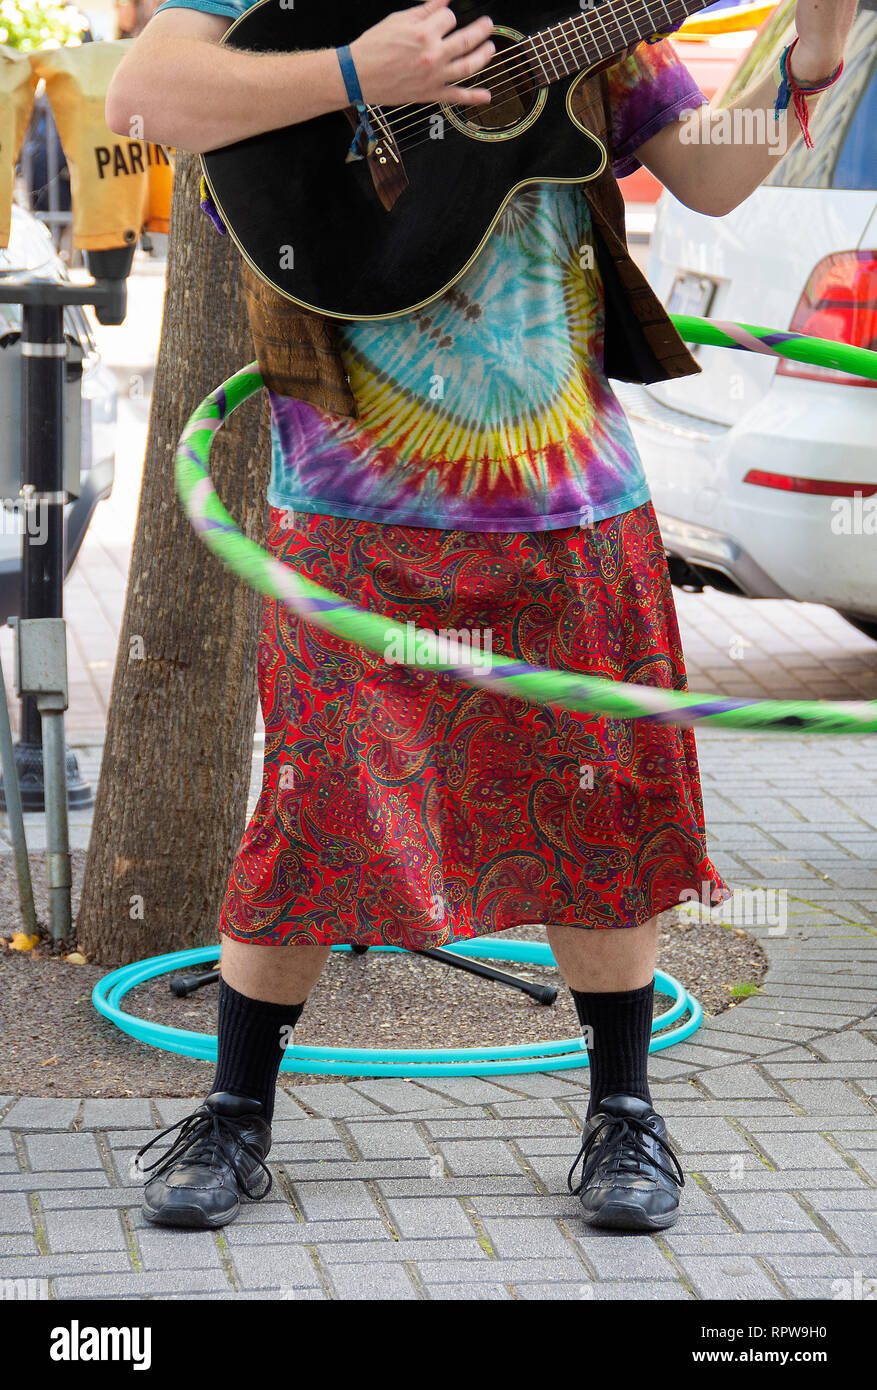 man wearing hippie style clothing playing guitar and twirling a hula hoop on street corner - Stock Image